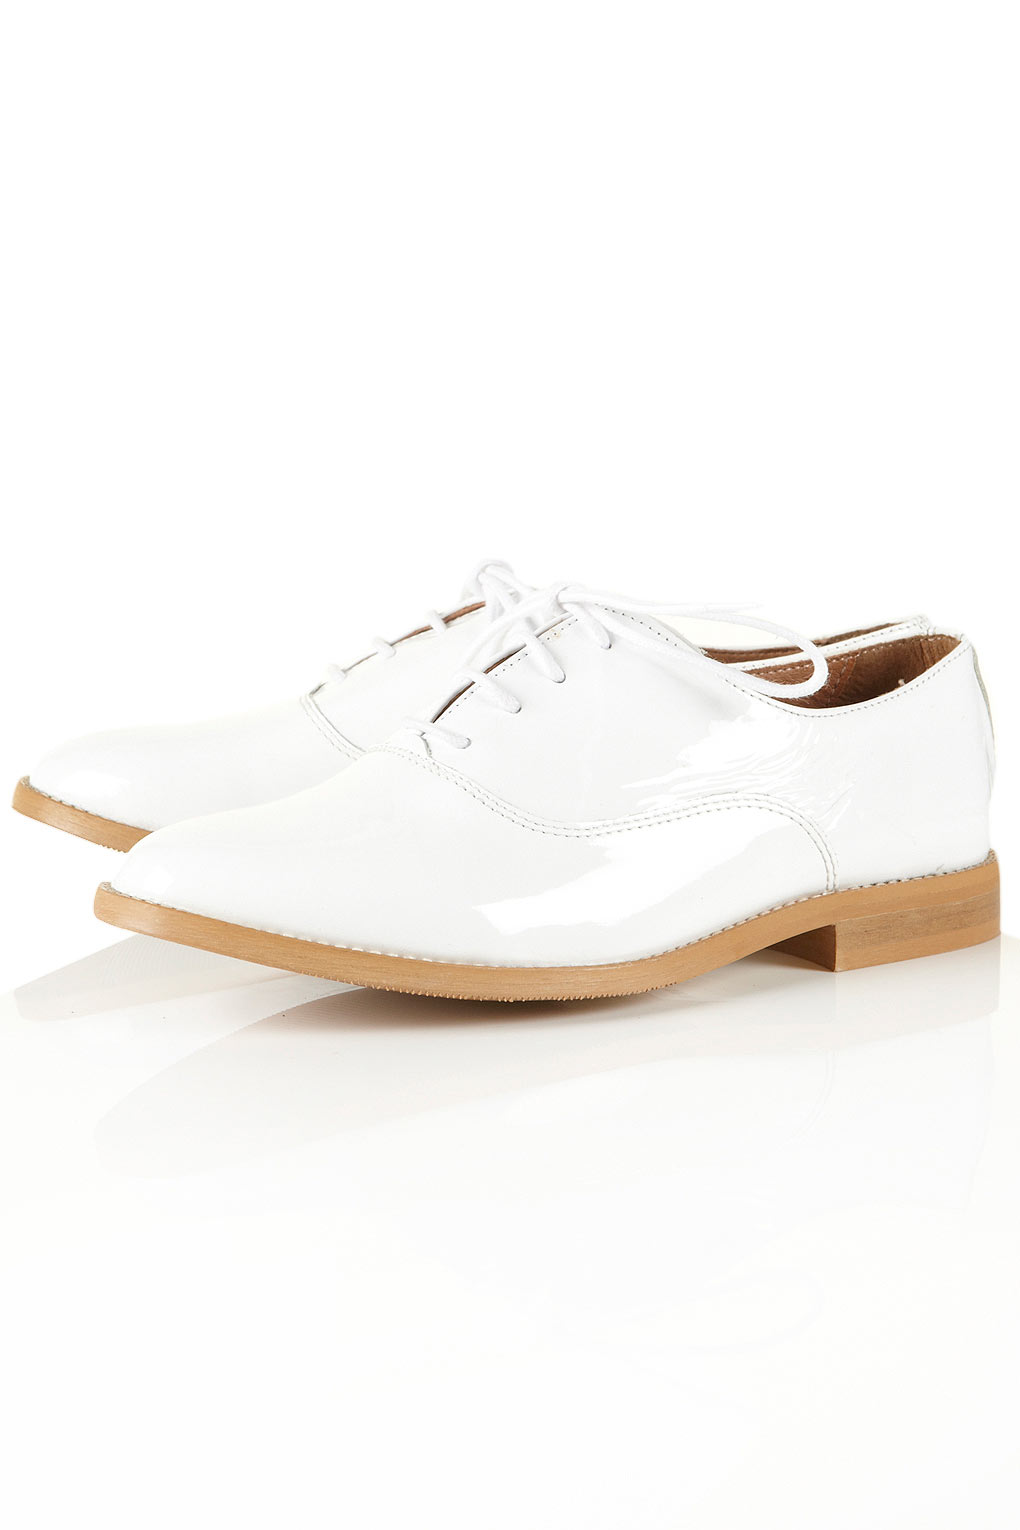 Kitch Patent Shoes - Topshop £60.00